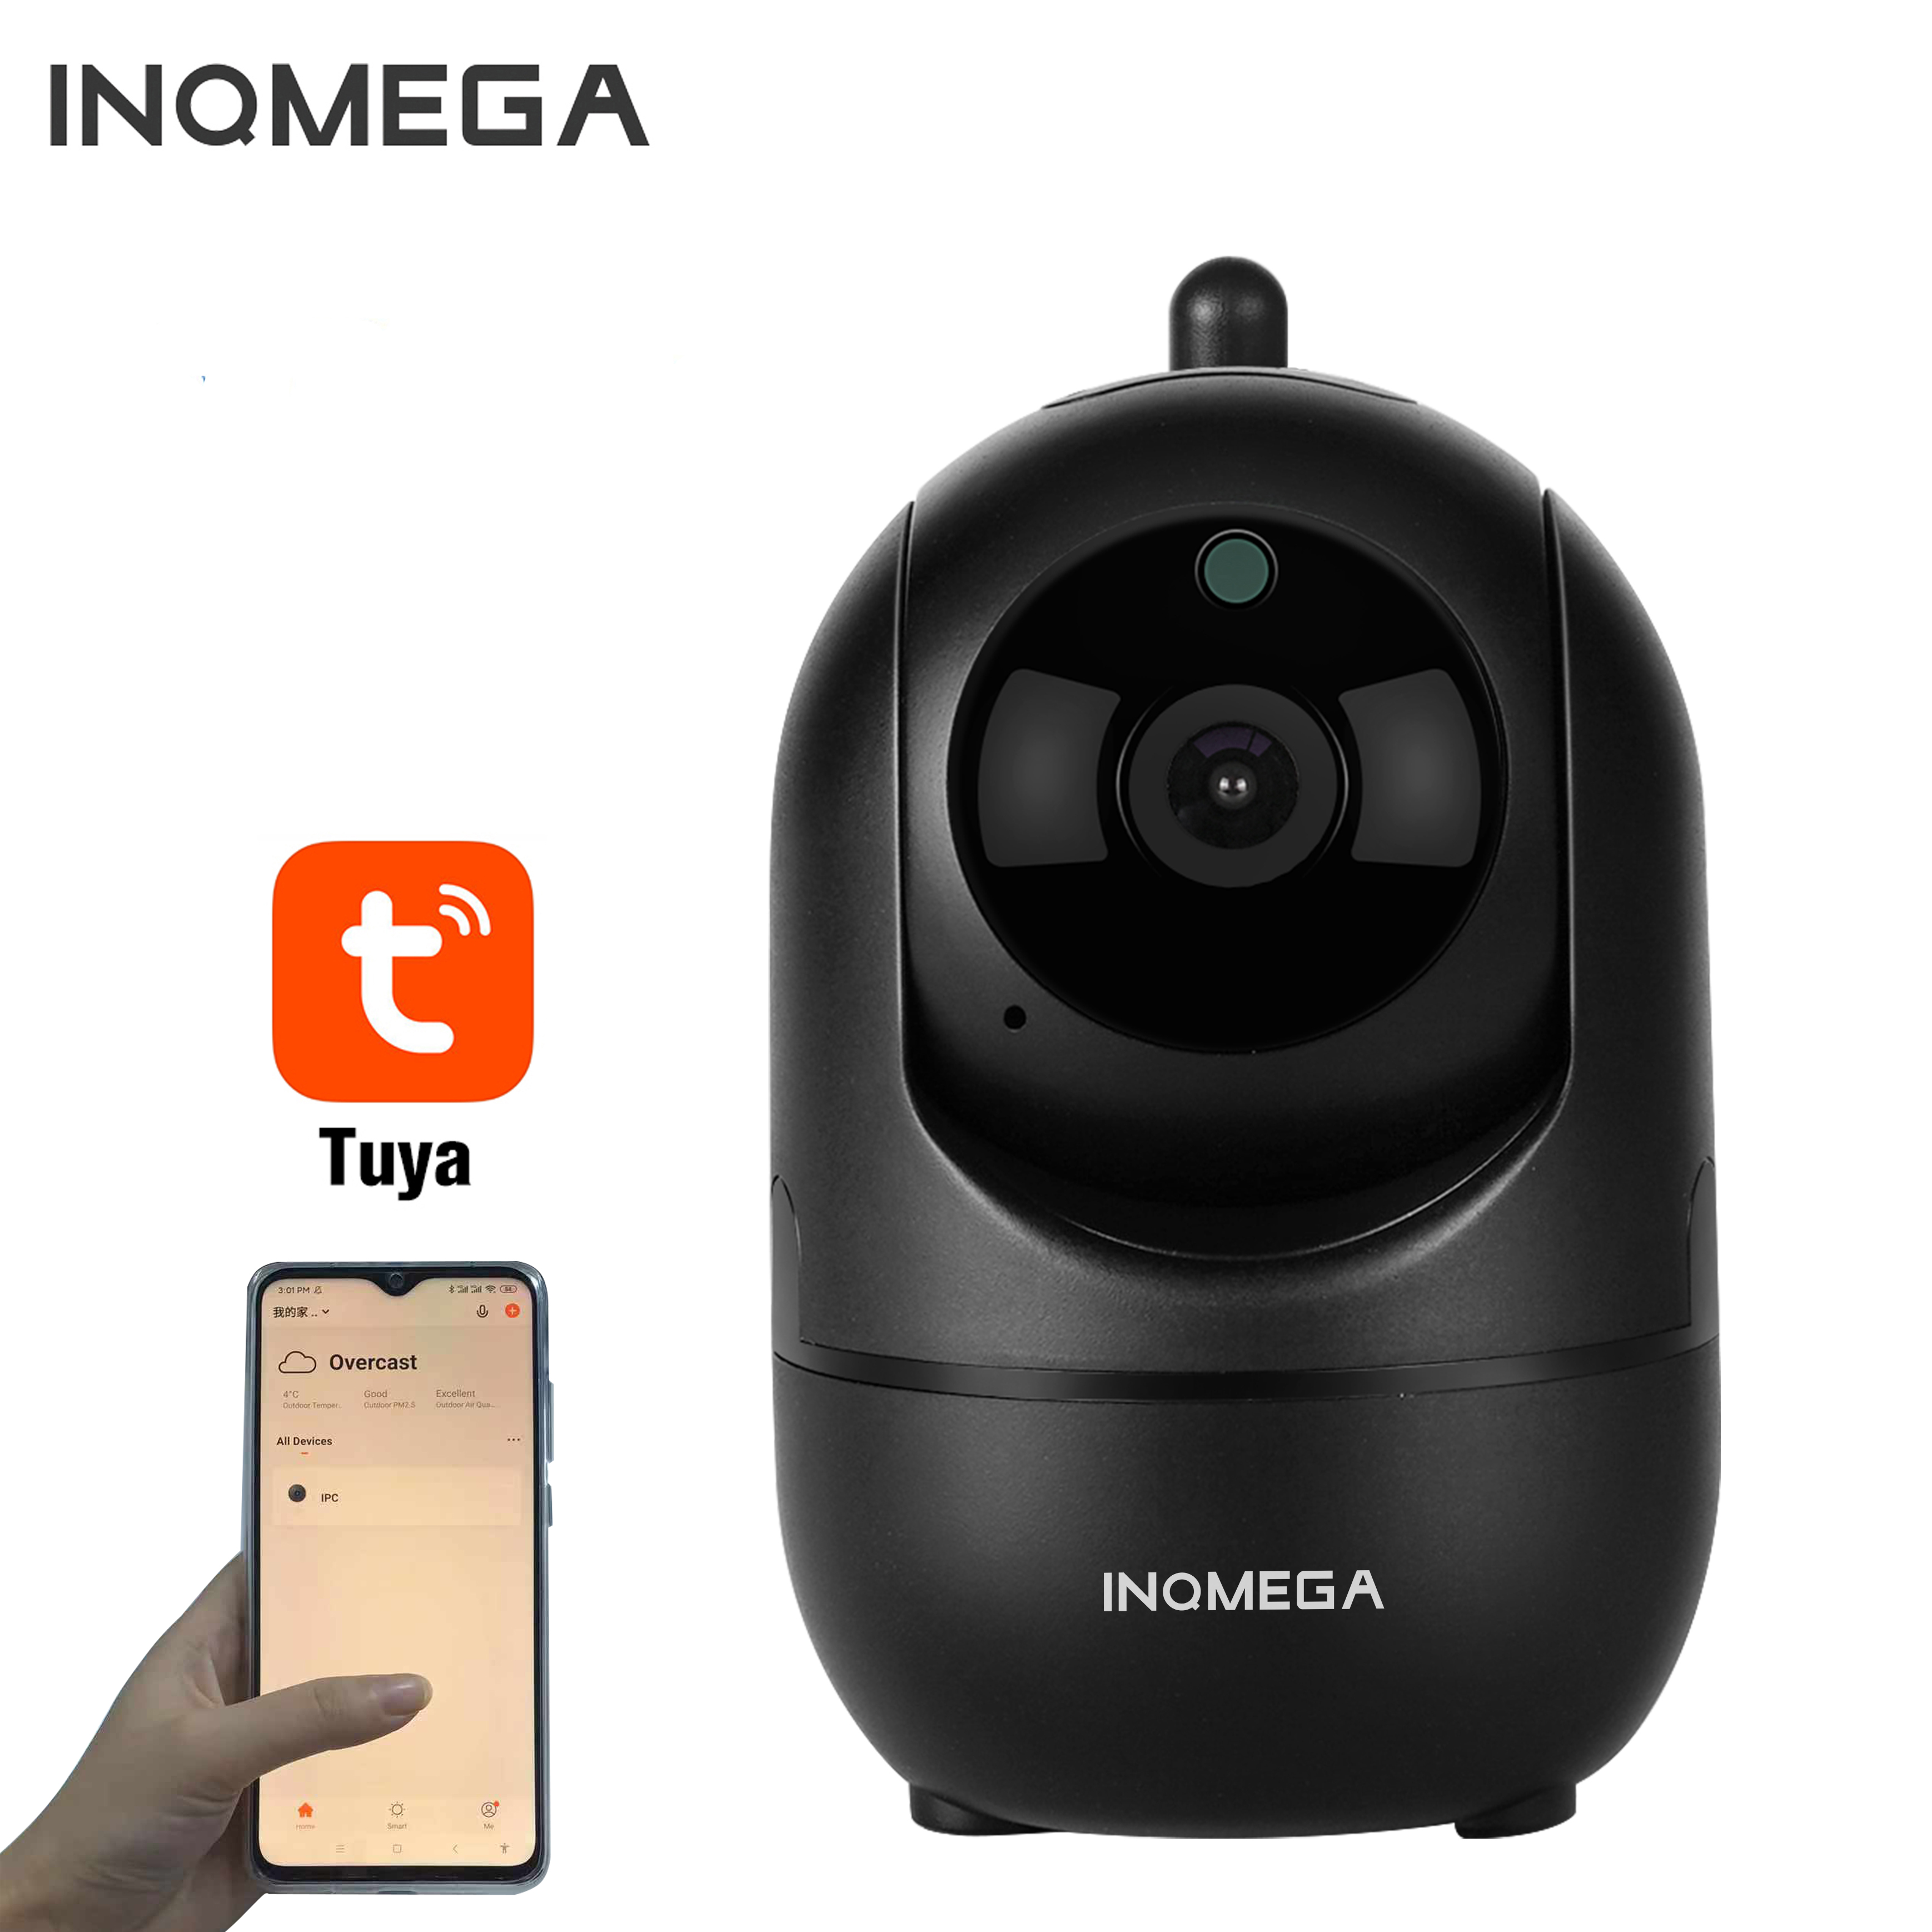 INQMEGA TUYA IP Camera Home Security Surveillance Camera CCTV Network Wifi Kamera Wireless 1080P Cam